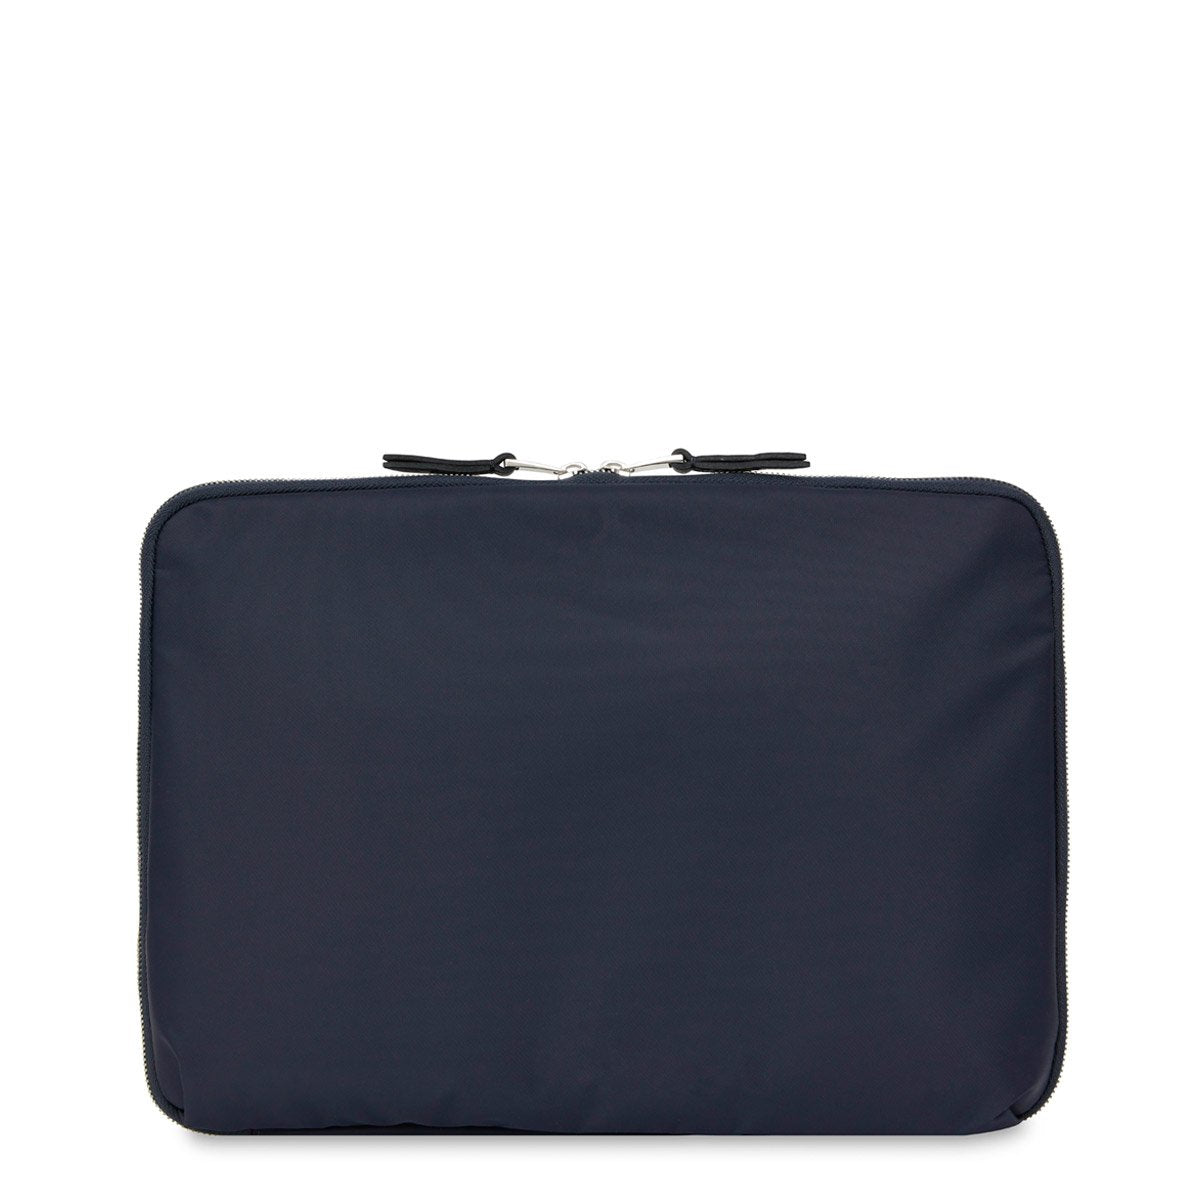 "Mayfair Knomad Organizer - 13"" Tech Organizer for Work -  